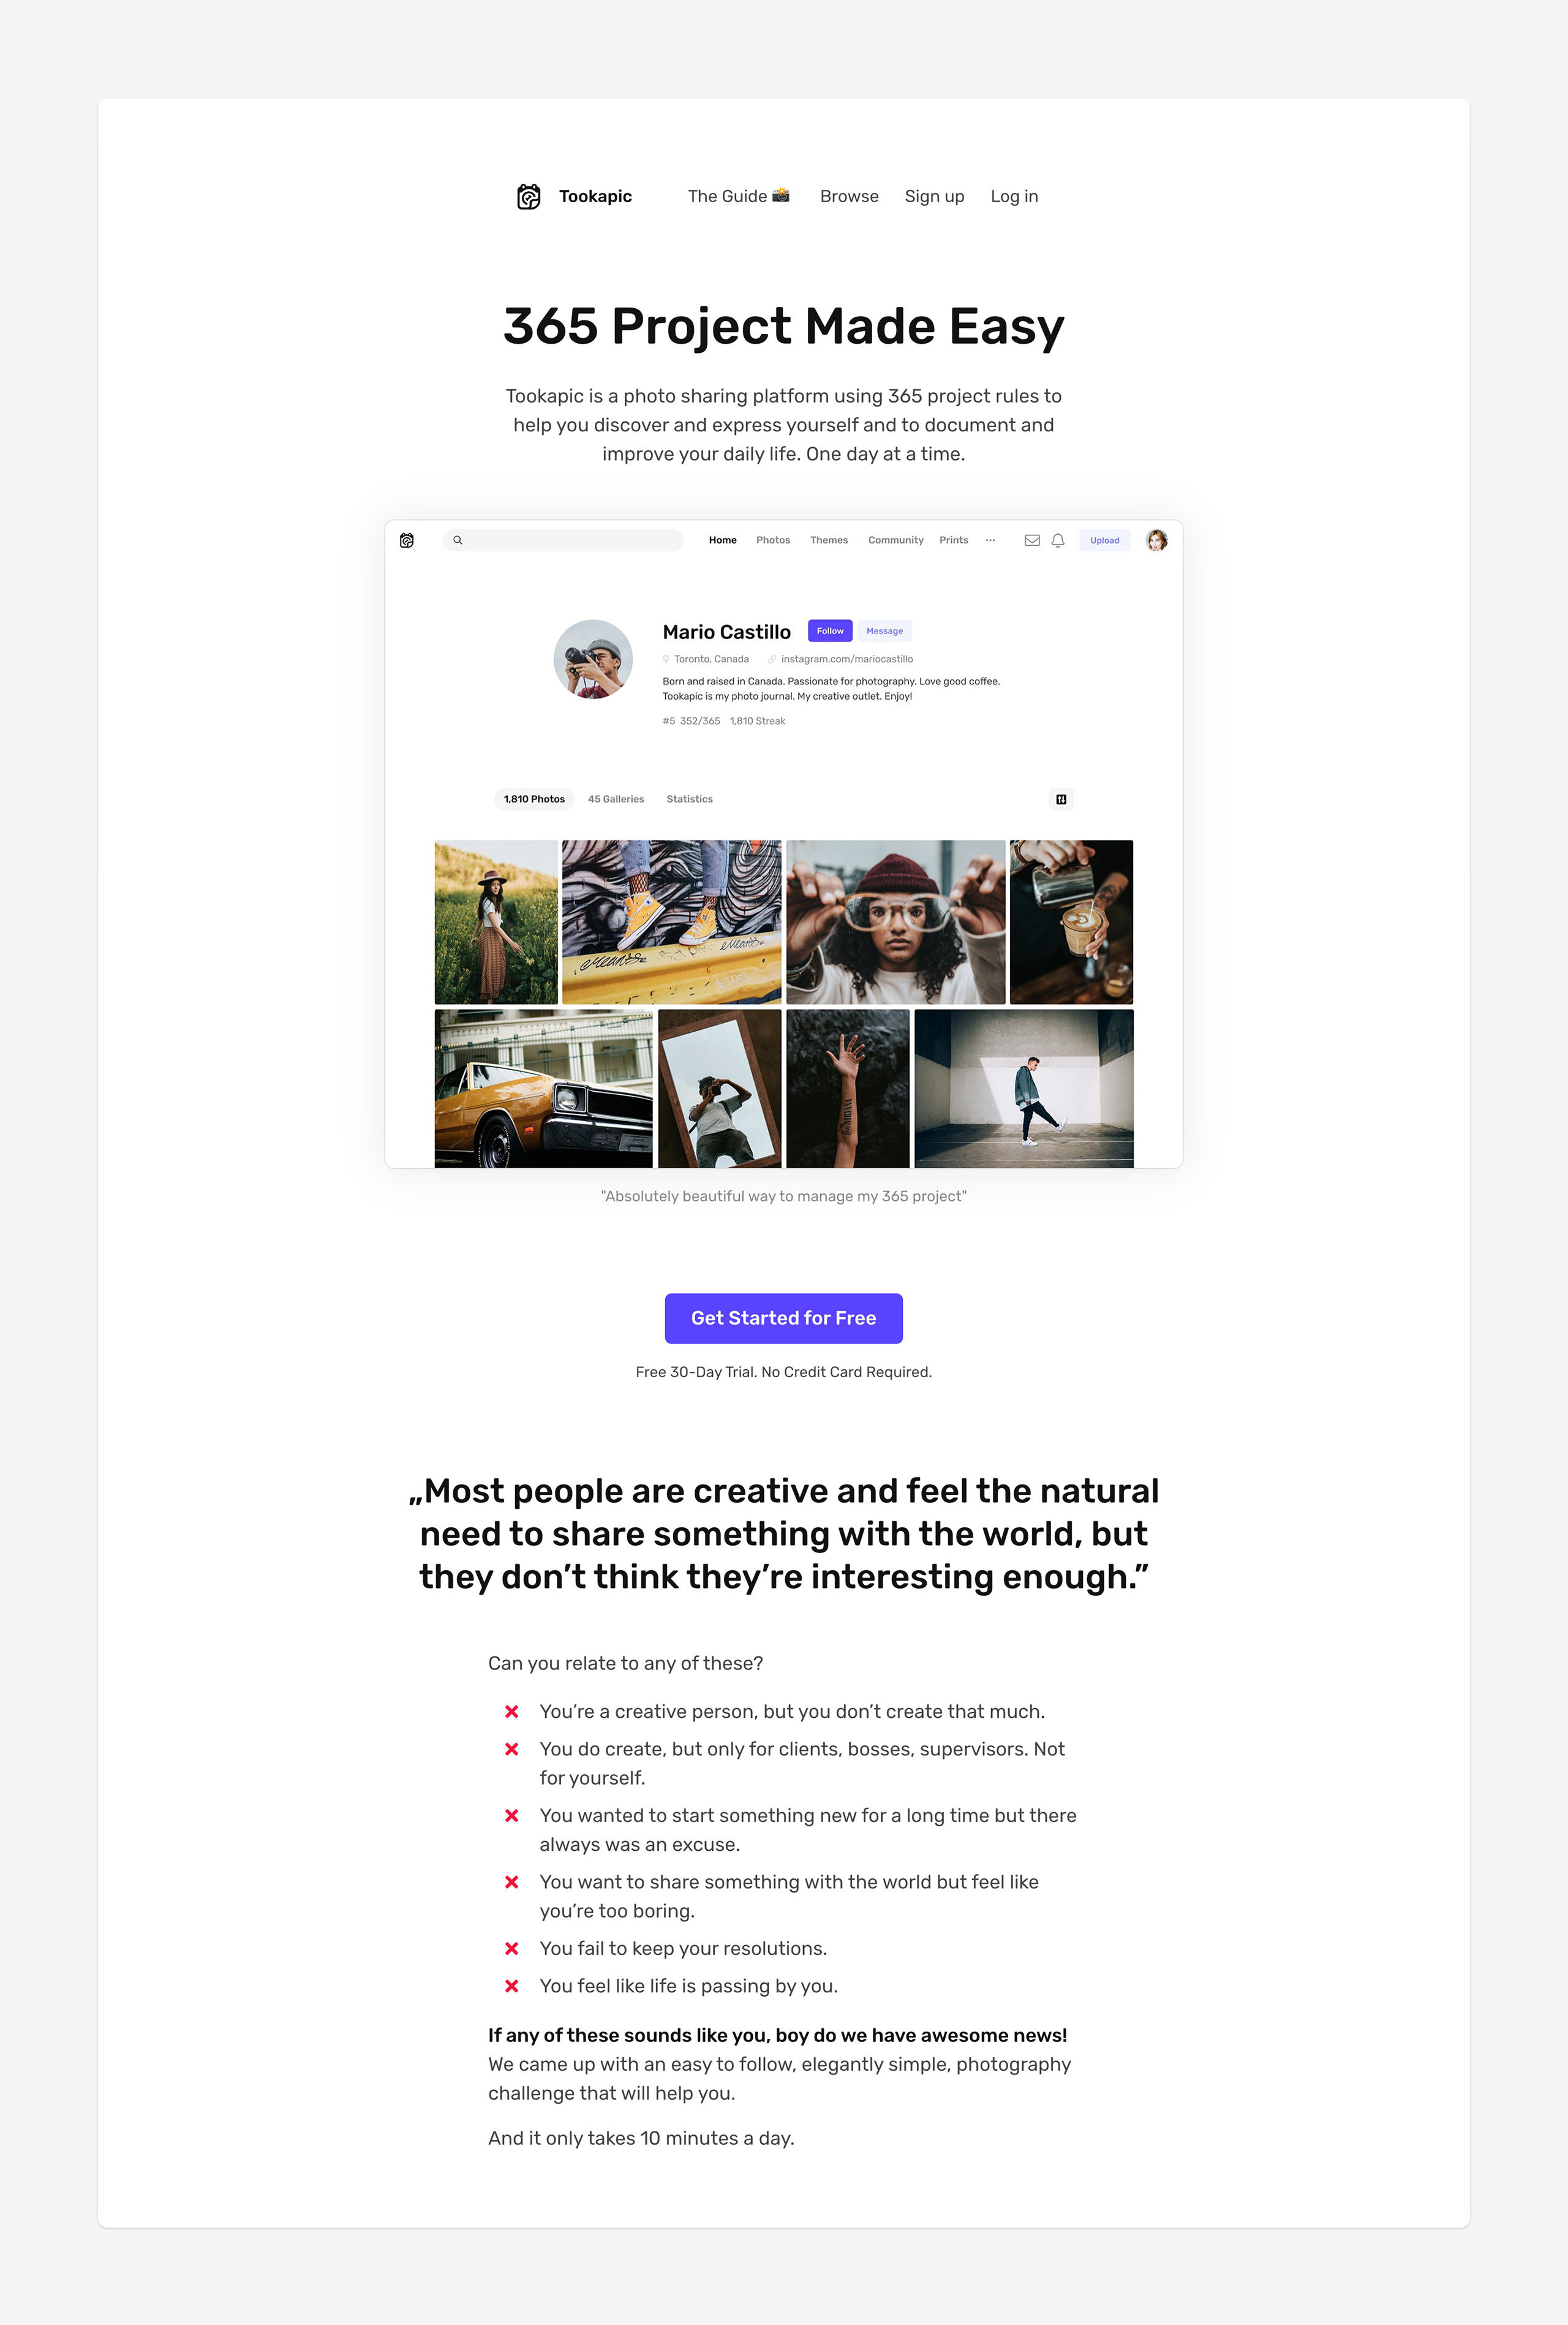 Nowy landing page Tookapic.